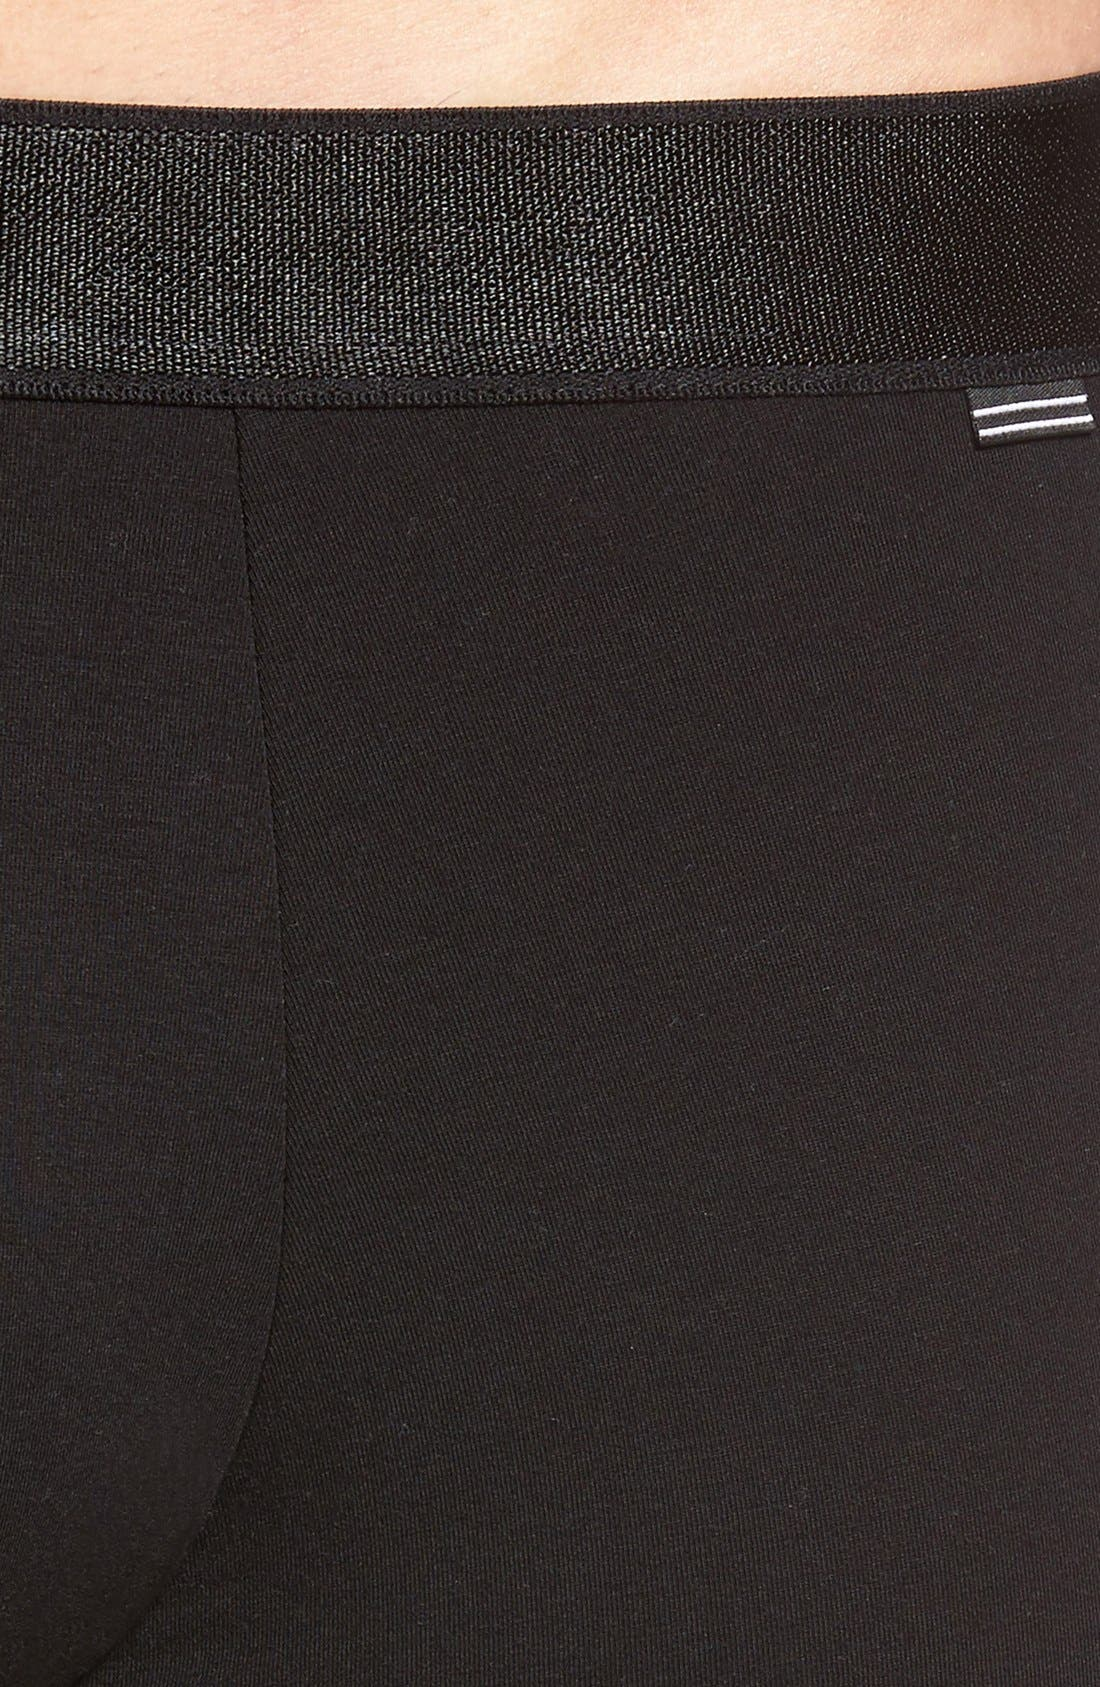 Micromodal Trunks,                             Alternate thumbnail 4, color,                             001